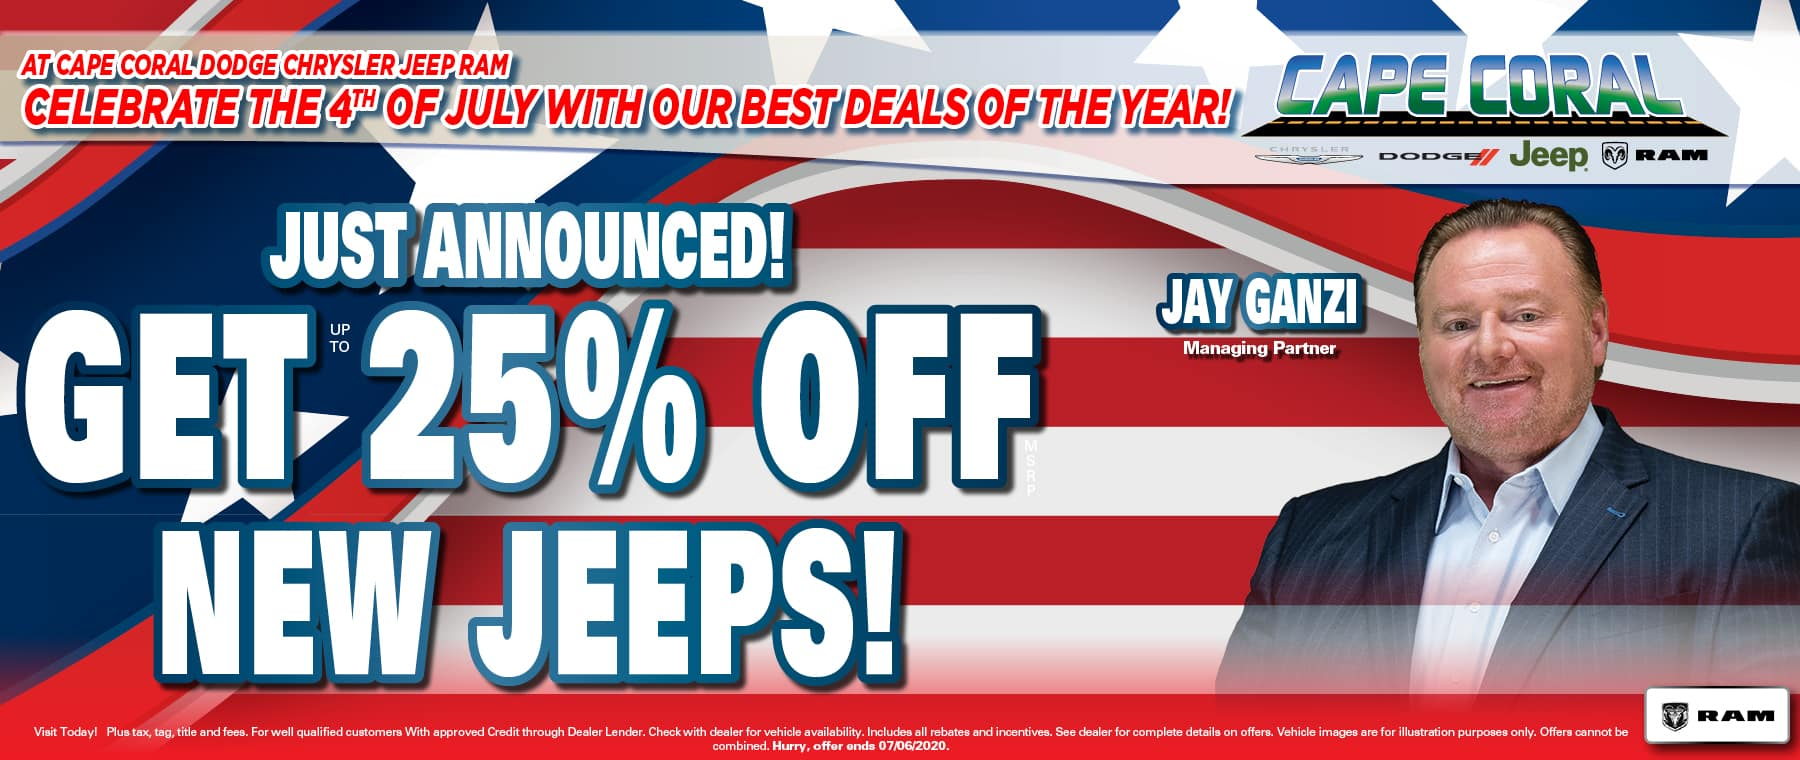 25% Off Jeeps!